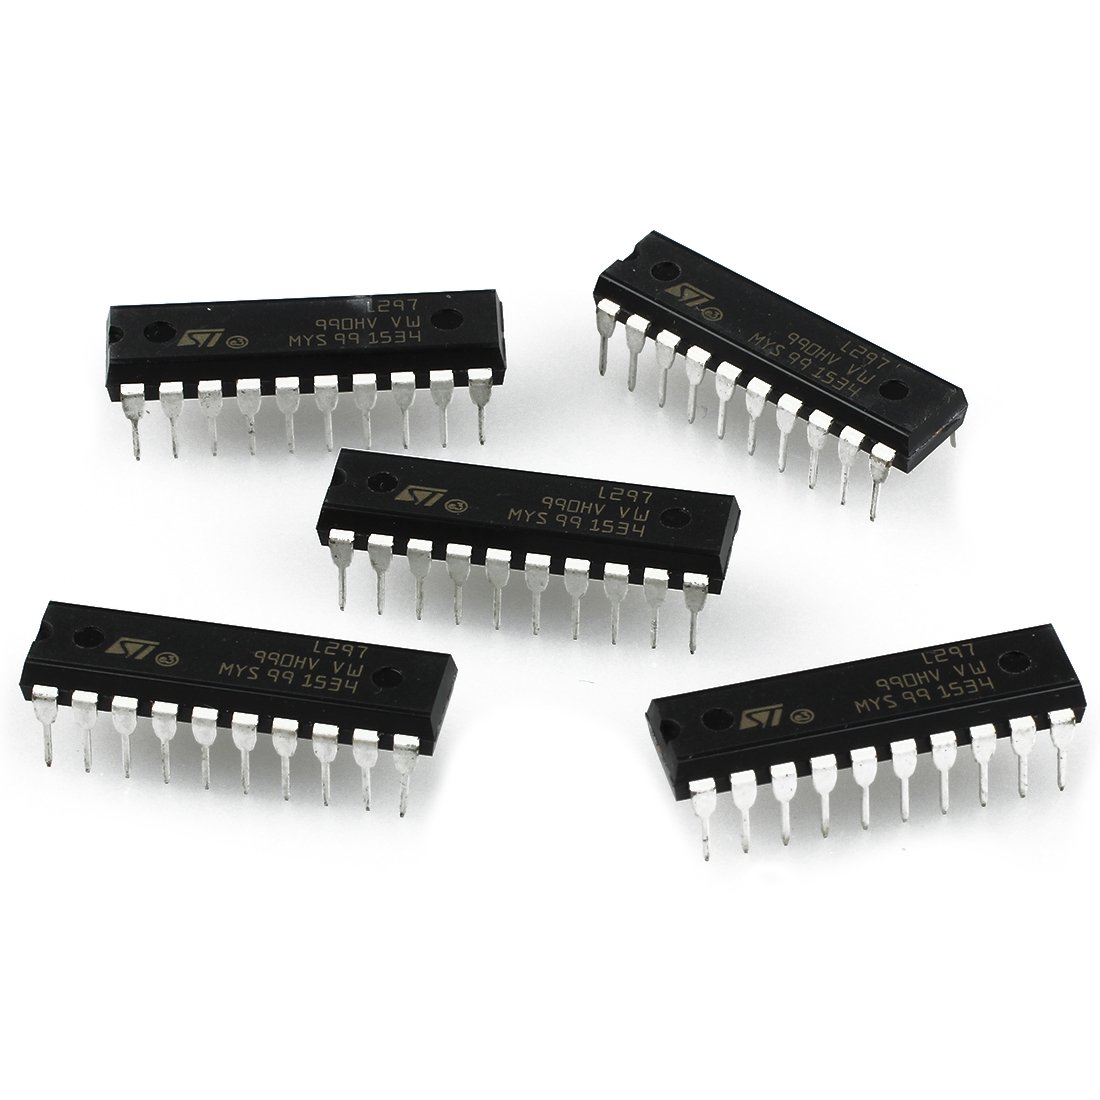 SODIAL(R)5Pcs L297 ST IC Stepper Motor CTRLR 20-DIP New Good Quality 49732